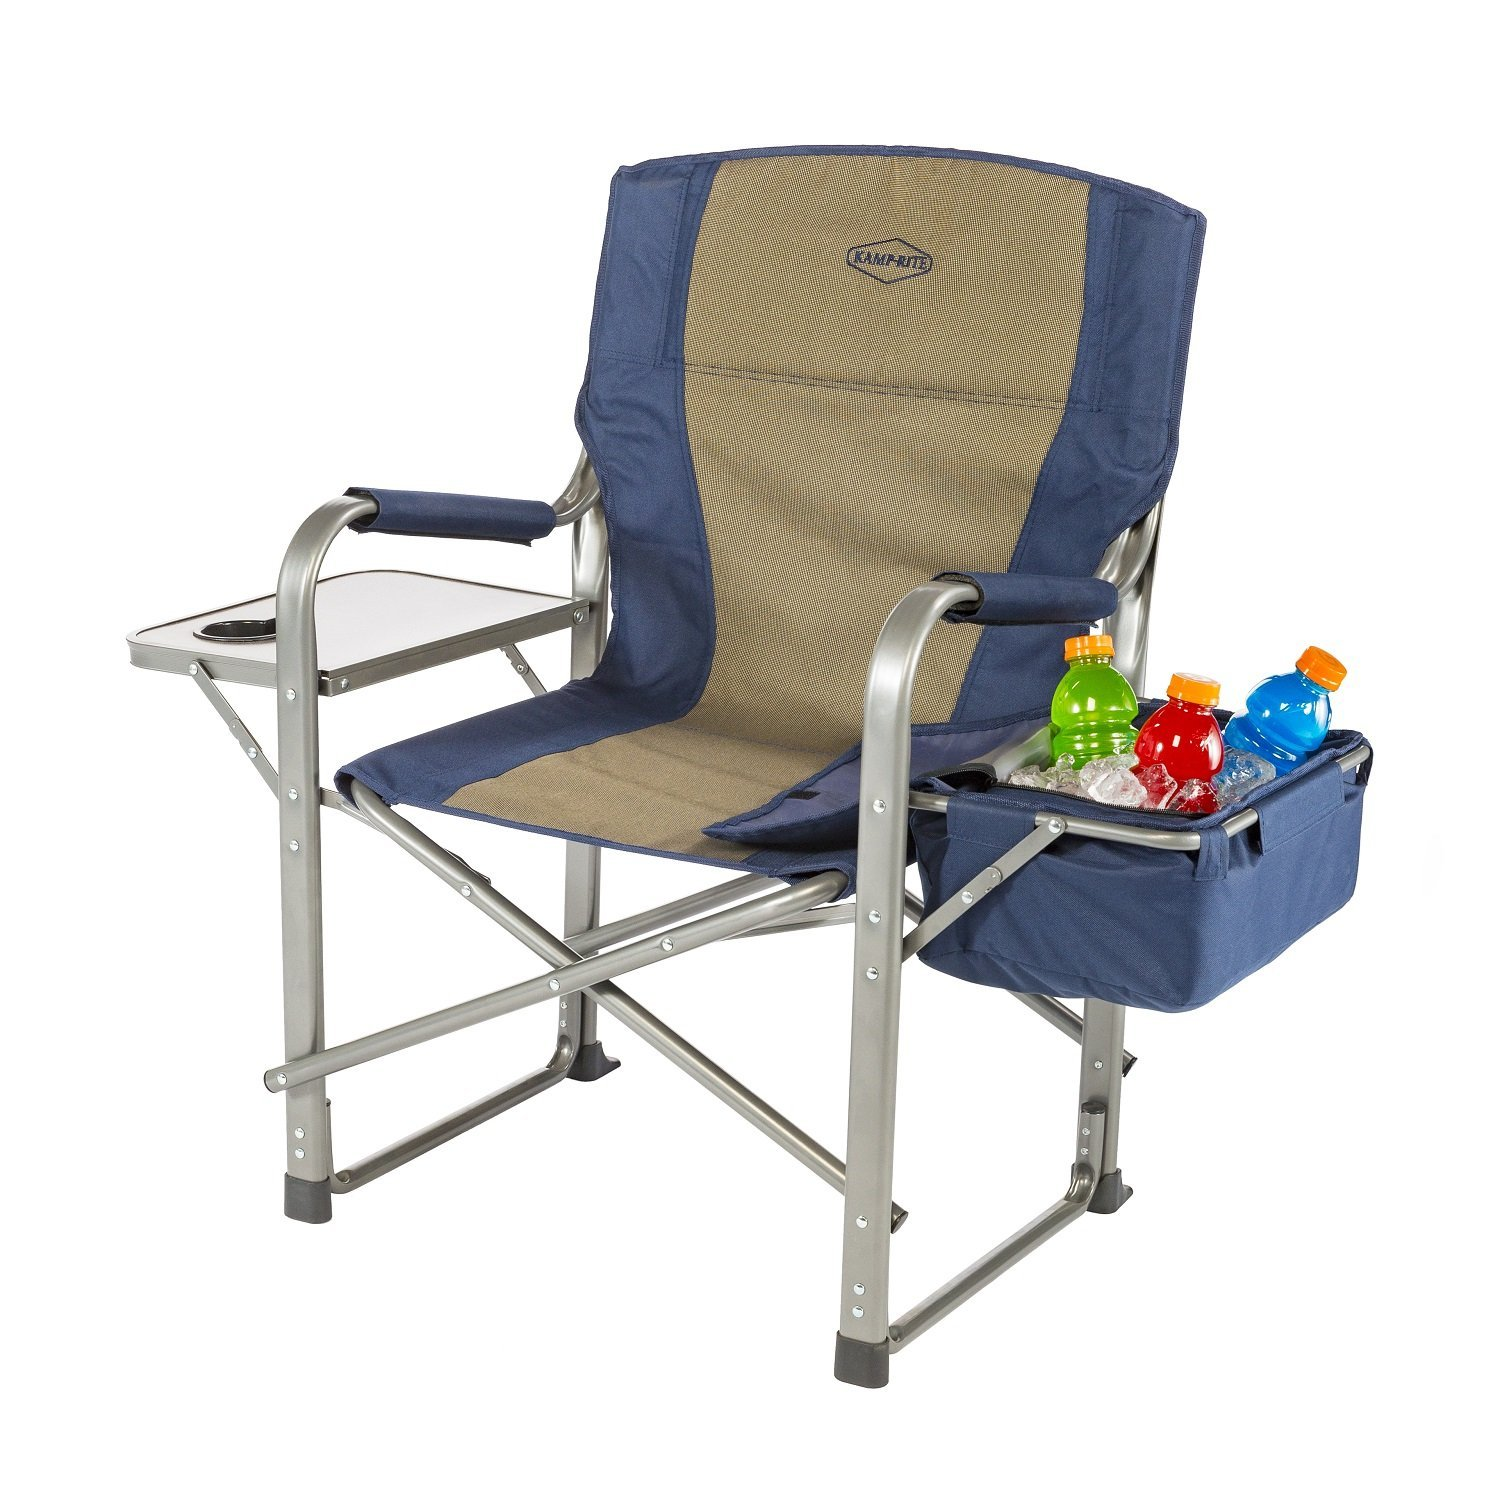 Best Camp Chair 6 Best Camping Chairs To Make Camping Comfy